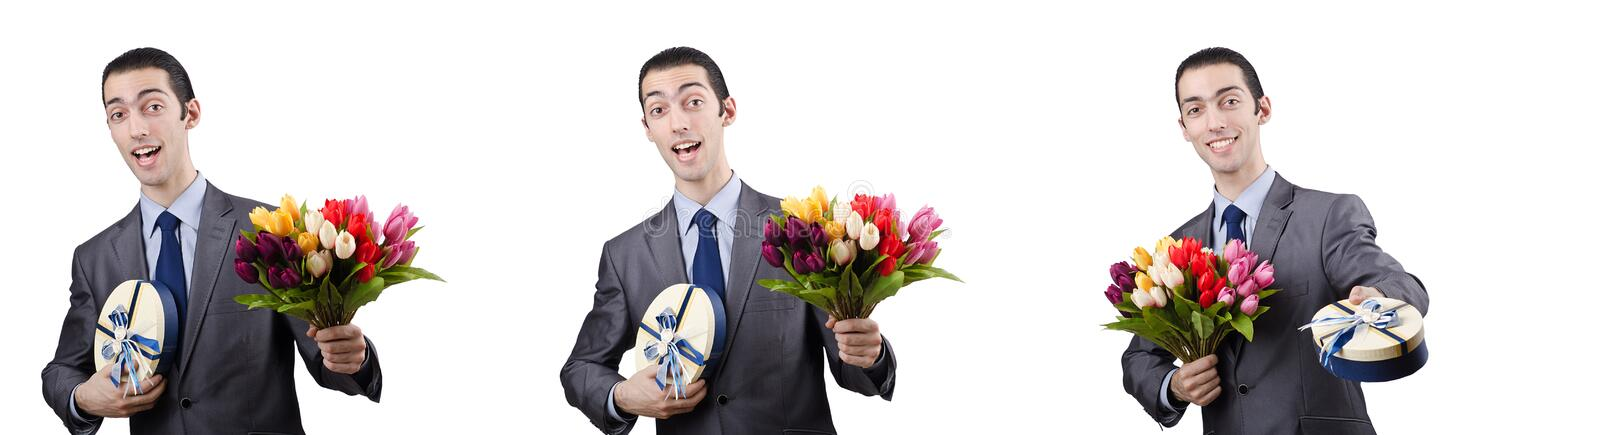 The businessman with giftbox and flowers. Businessman with giftbox and flowers stock image